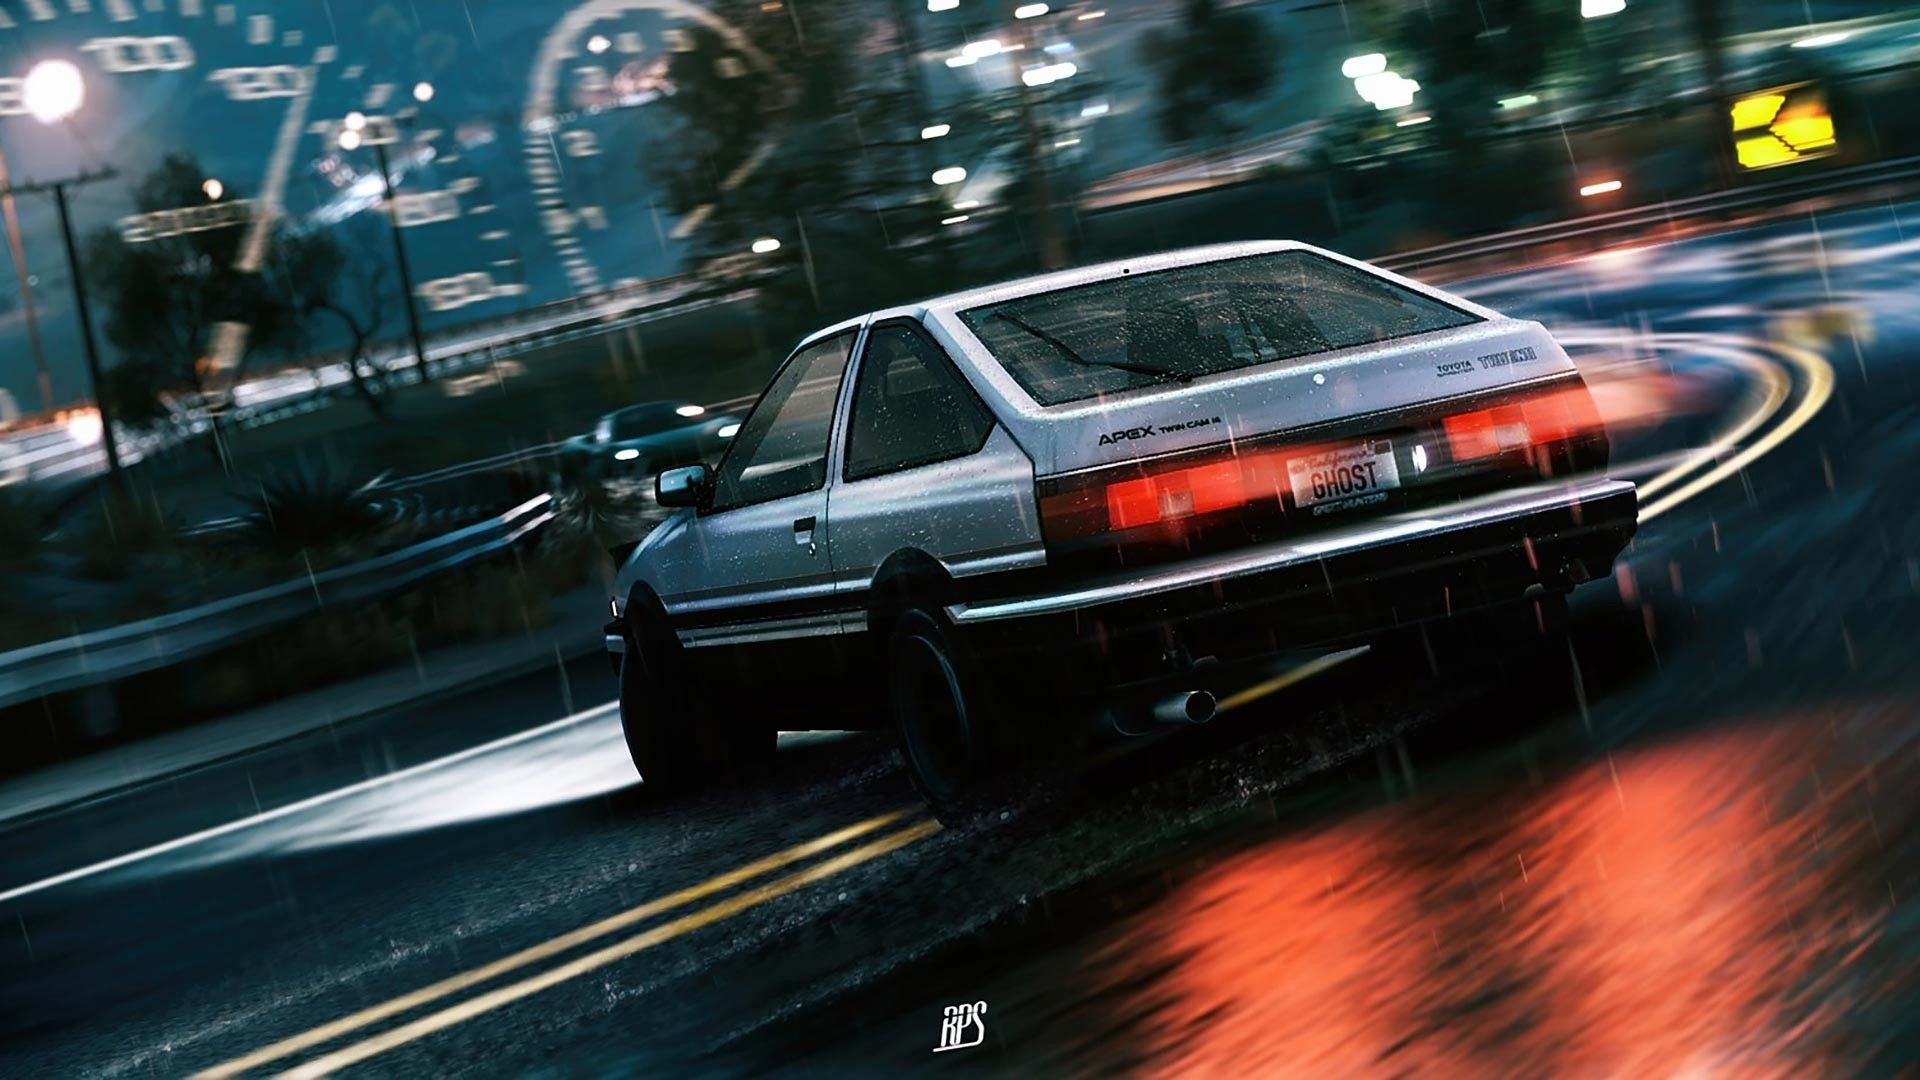 Are You Trying To Find Initial D Wall Paper Below Are 10